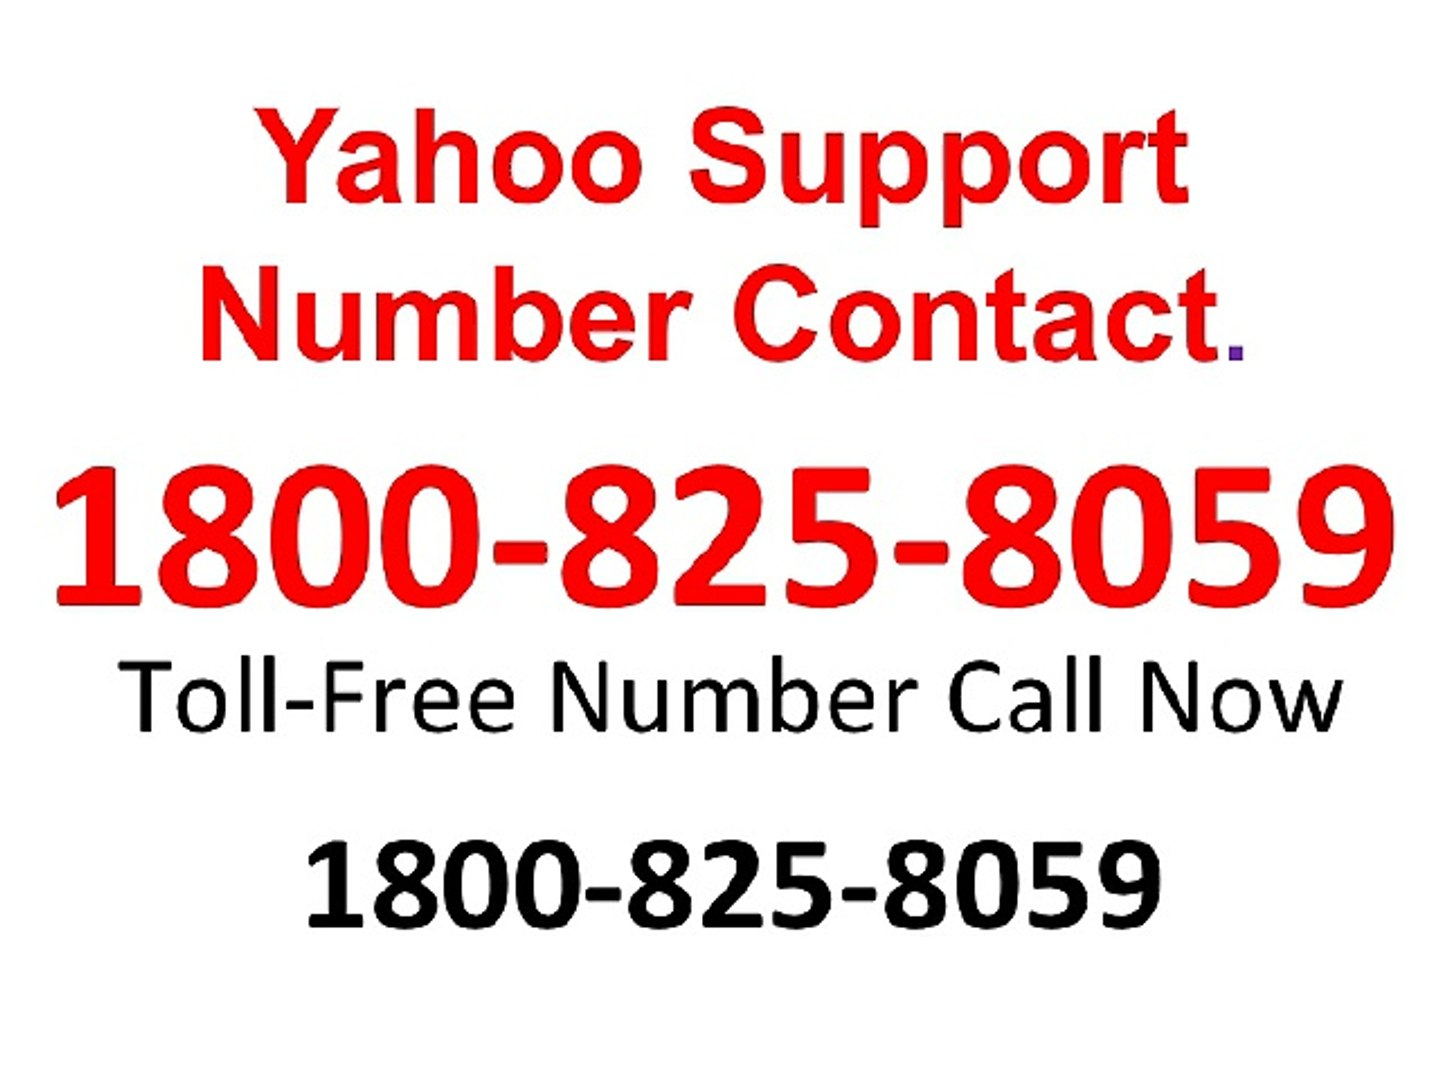 1800-825-8059 Yahoo Support Number Contact,Yahoo Toll Free Number,Yahoo